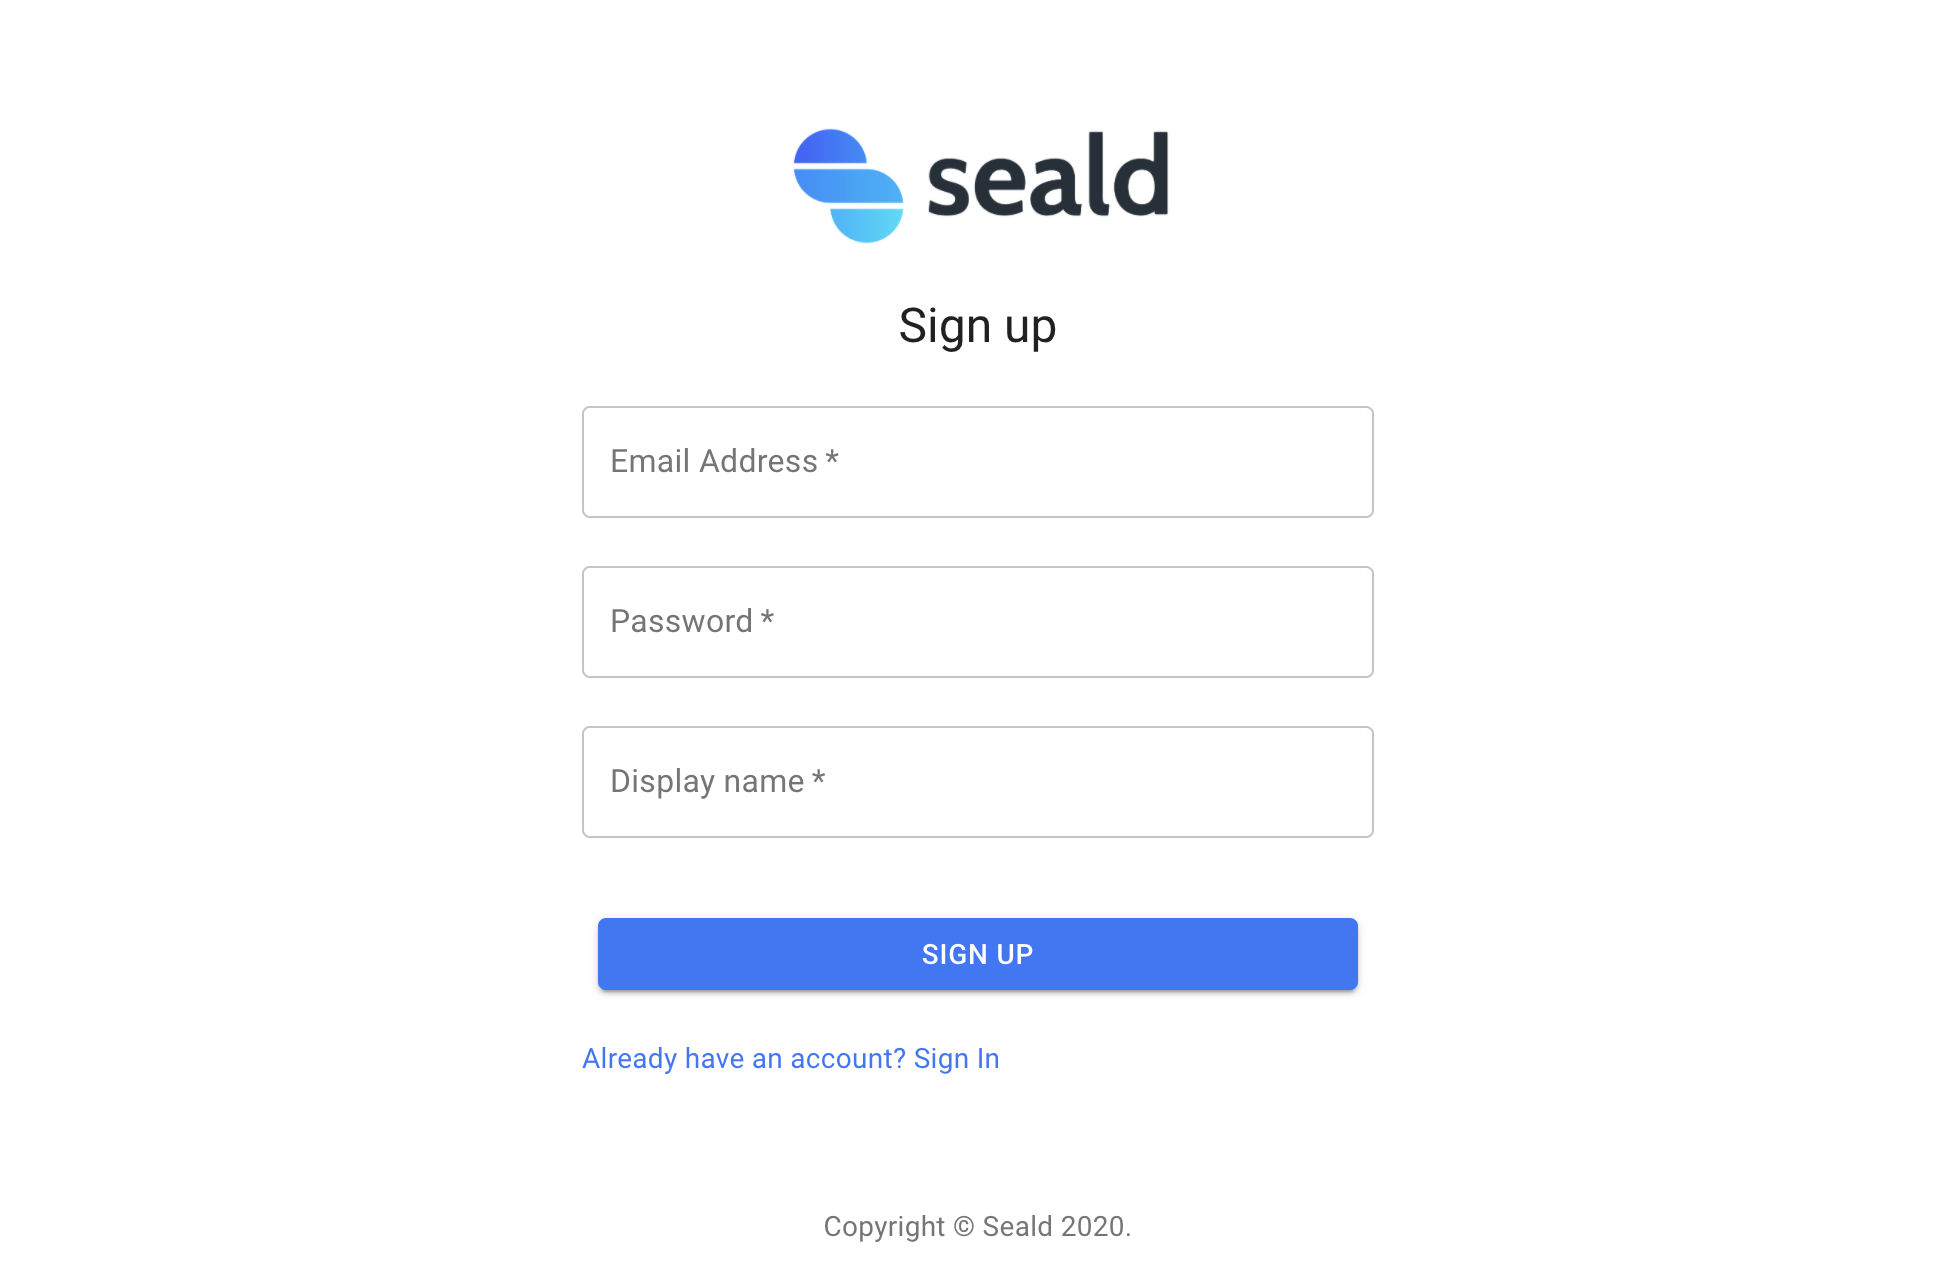 Sign up Seald demo